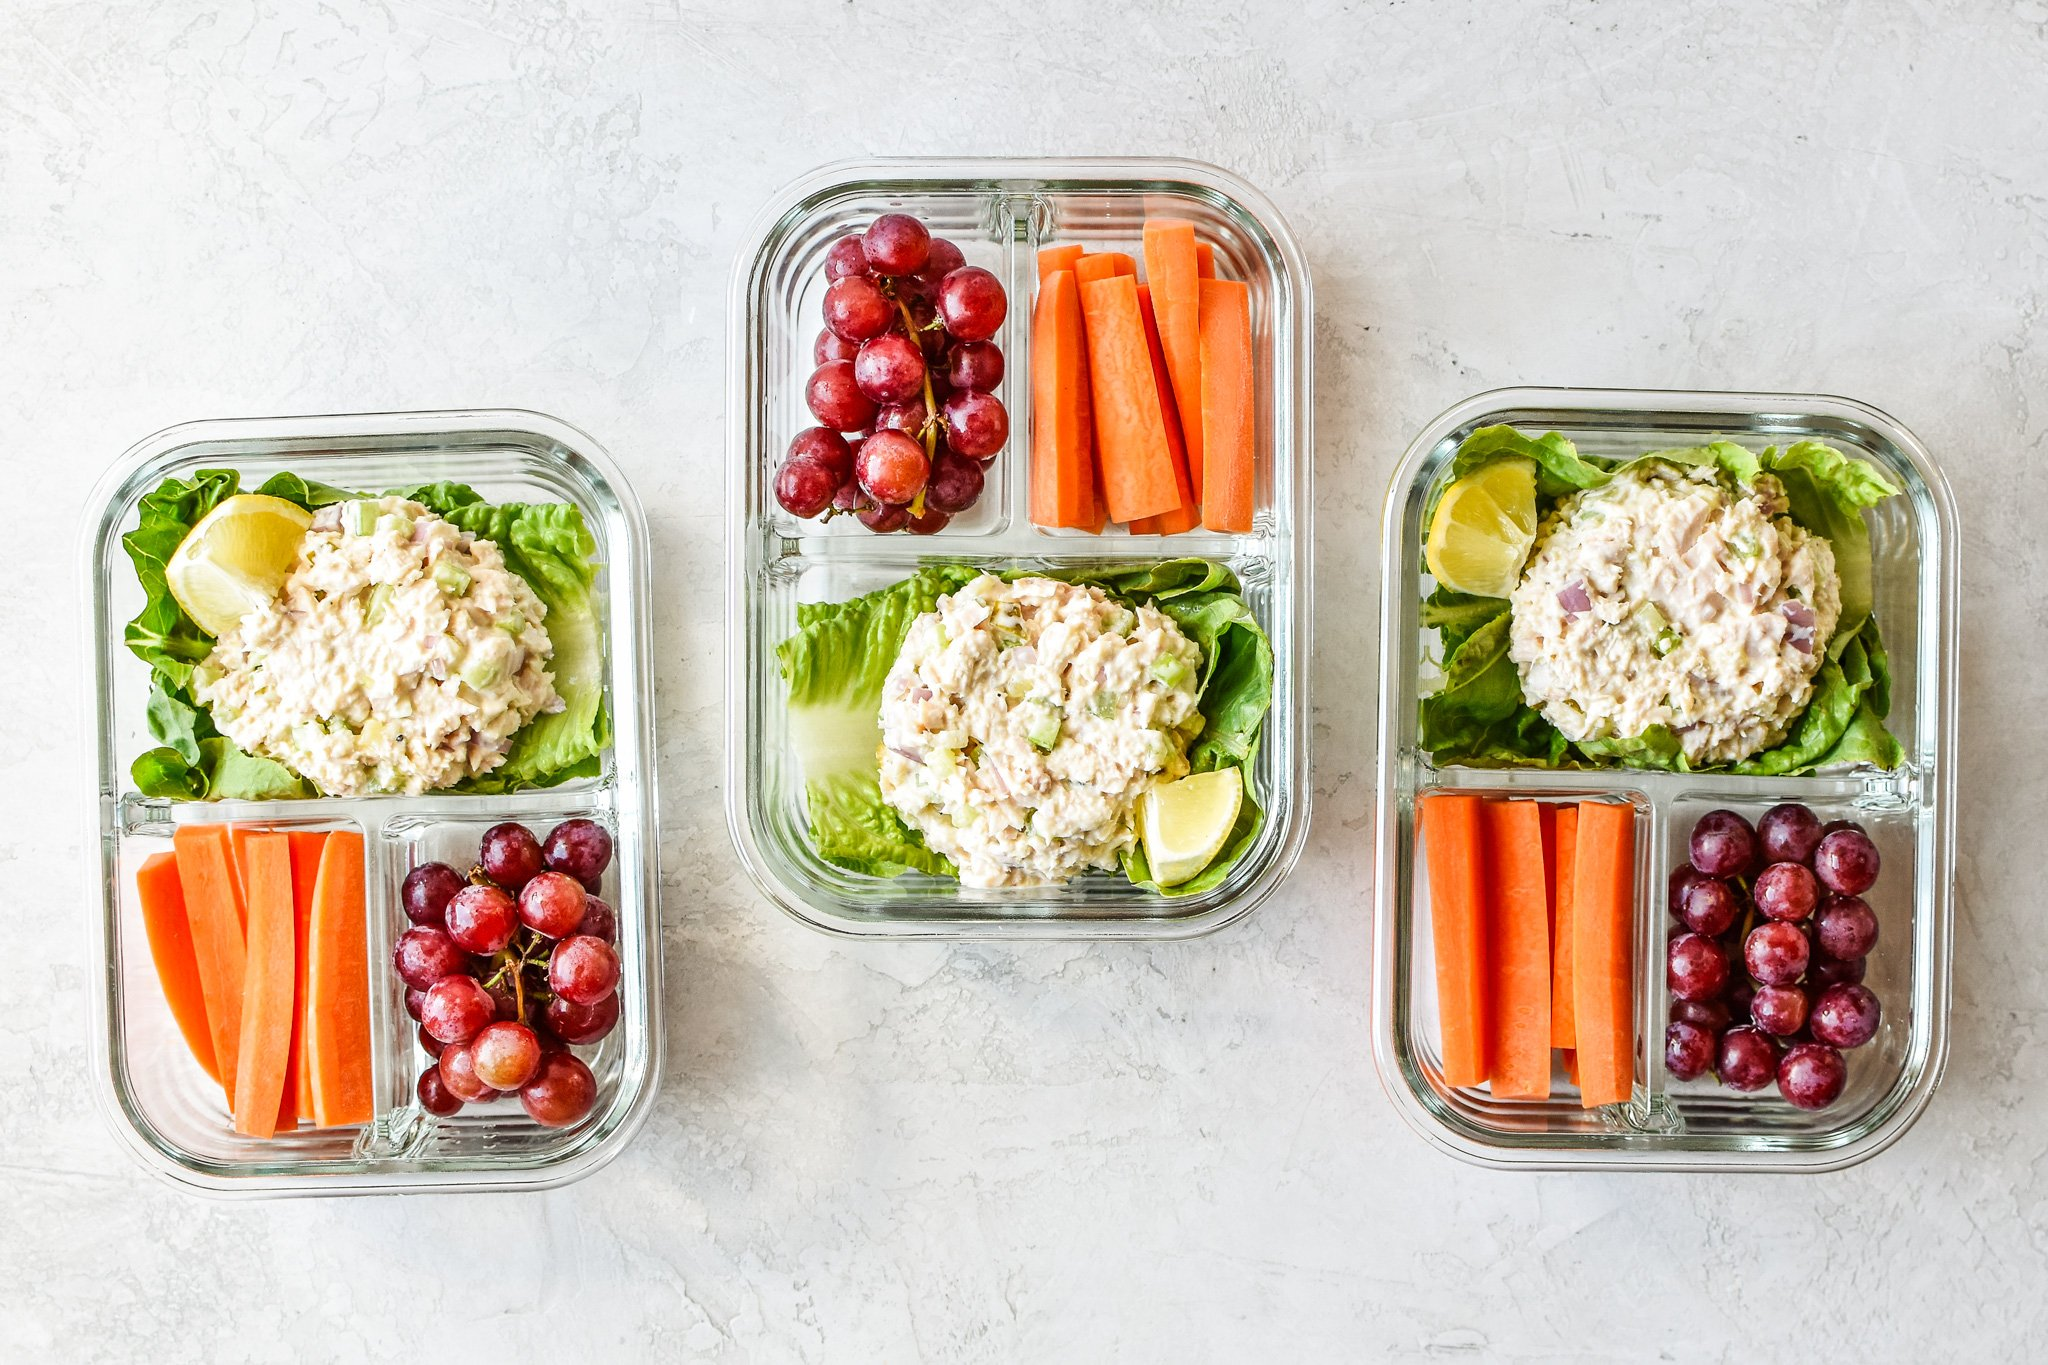 Three tuna salad lettuce wraps meal prep lunches on the counter viewed from above.